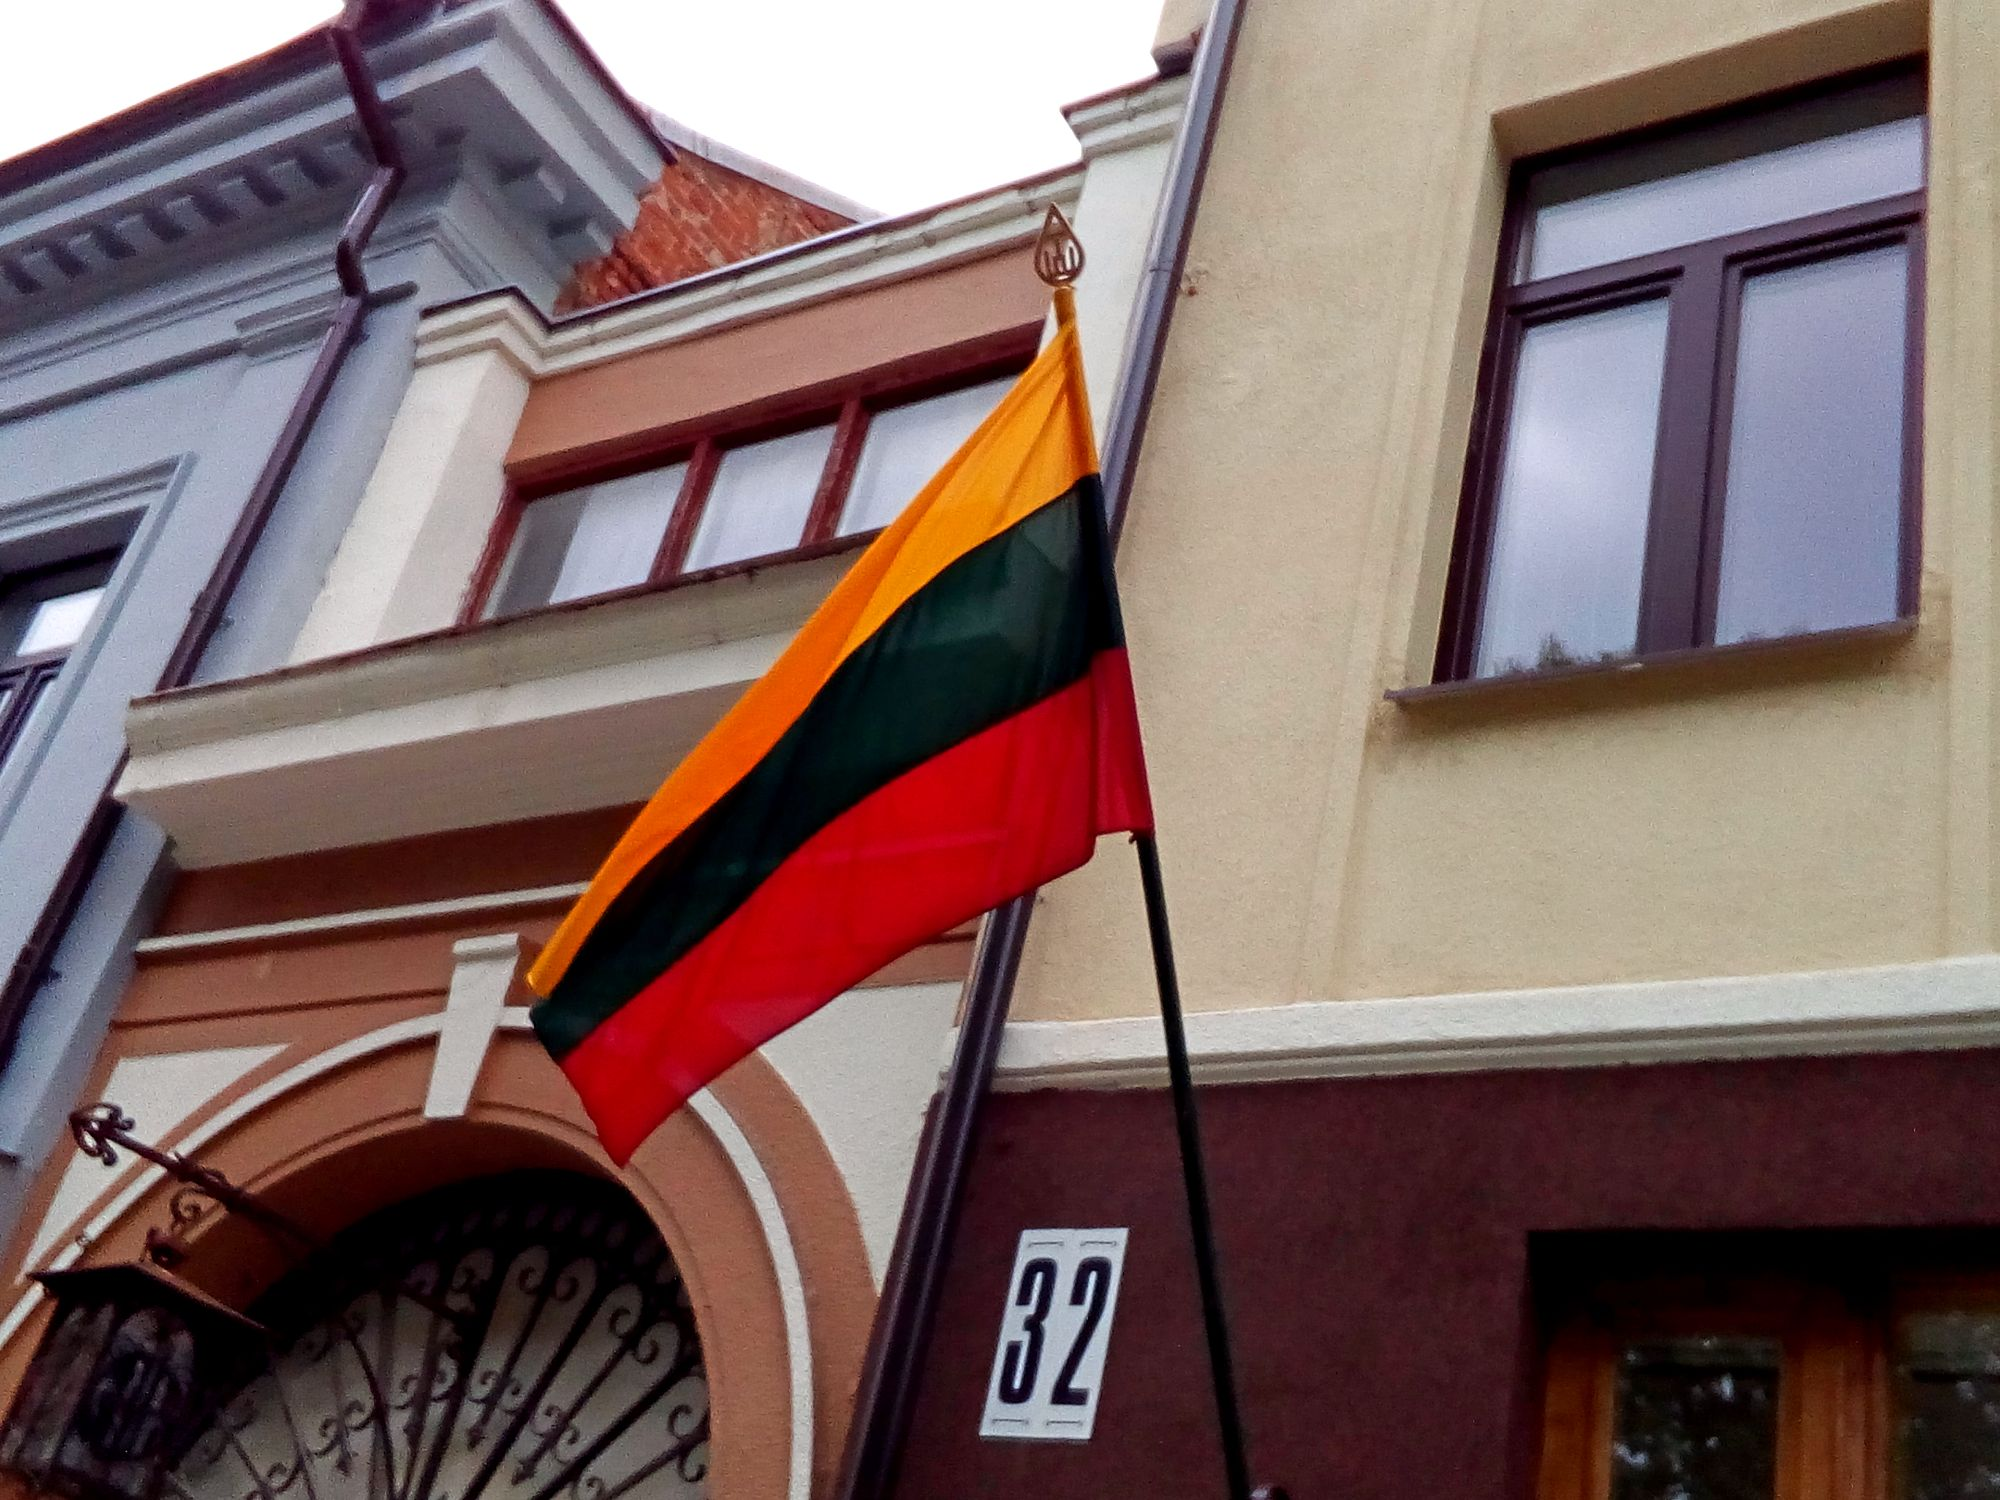 Flags were displayed all over Kaunas.